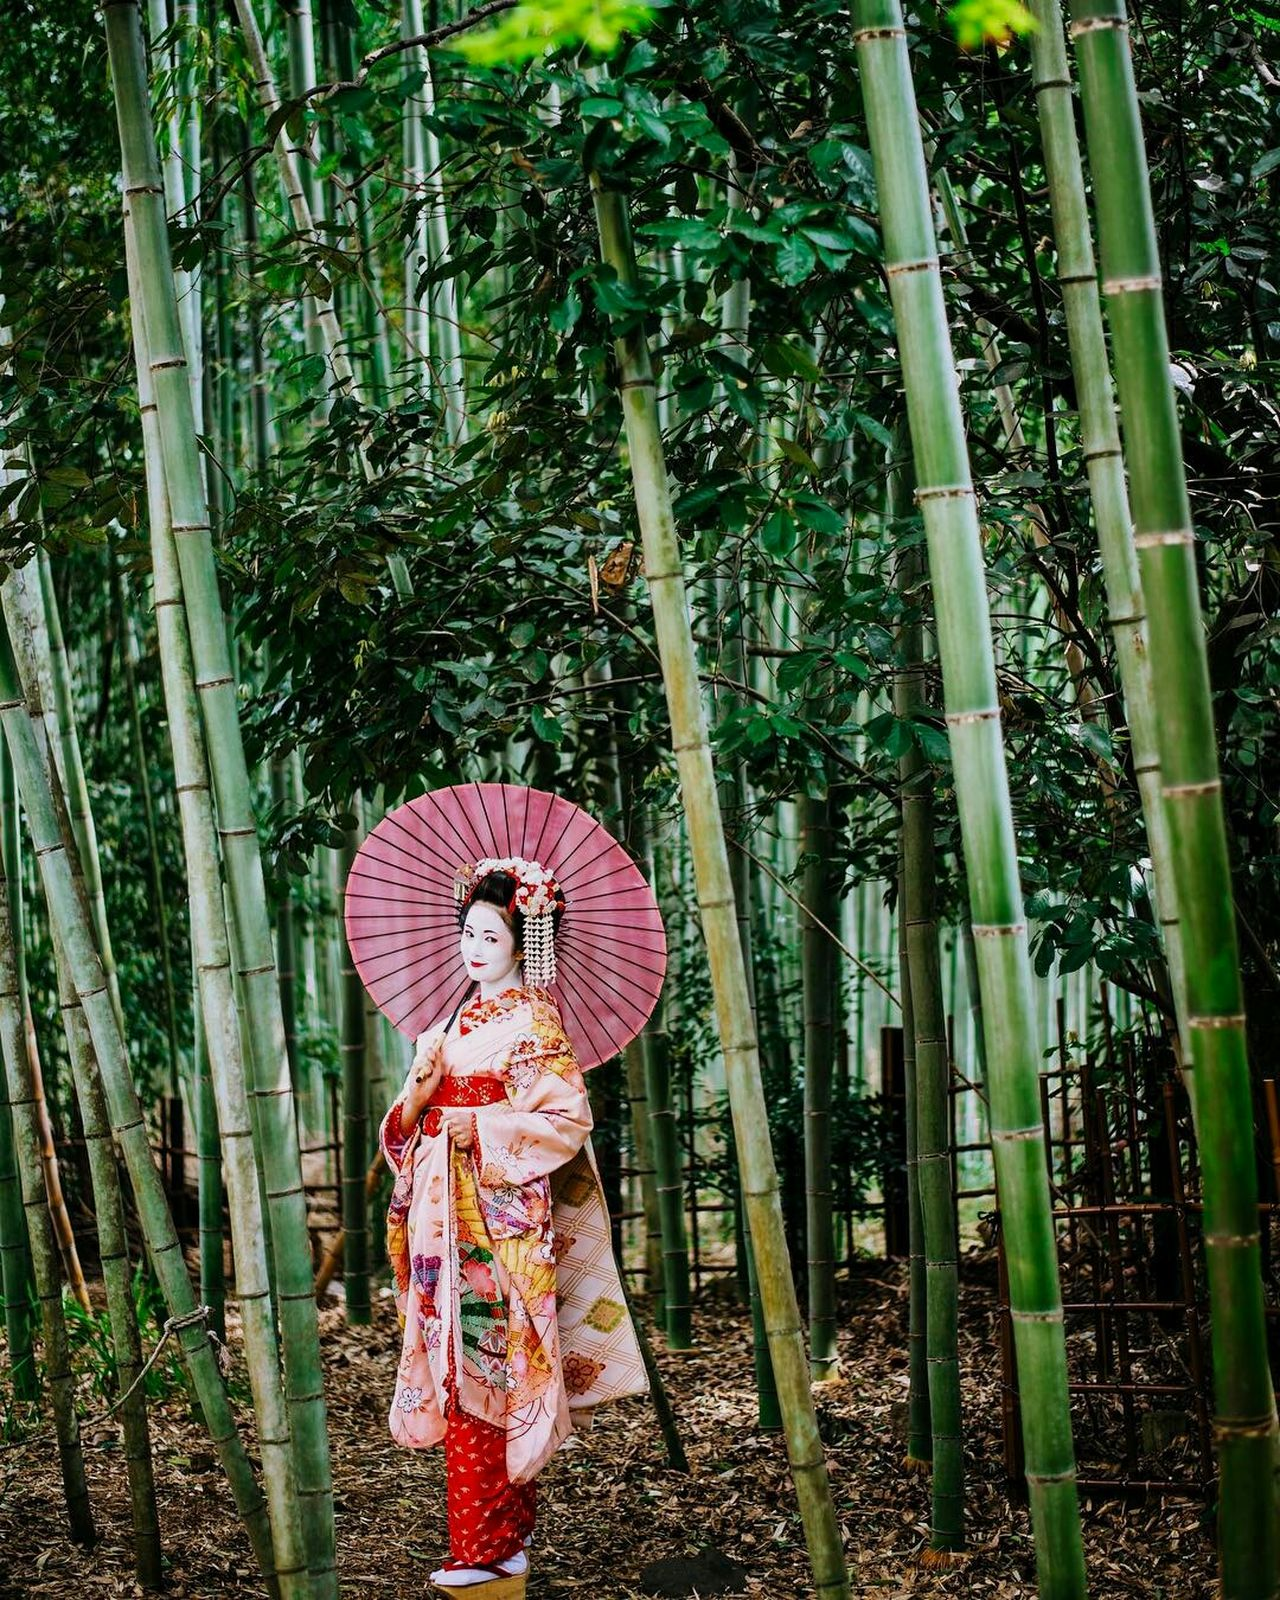 The Portraitist - 2017 EyeEm Awards The Great Outdoors - 2017 EyeEm Awards Tree Bamboo - Plant Nature Bokehphotography Bokeh Photography Outdoors Picoftheday Photooftheday Explorejapan EyeEmNewHere Nikon D750 Kimono Dress Japangirl Traditional Clothing Art Is Everywhere